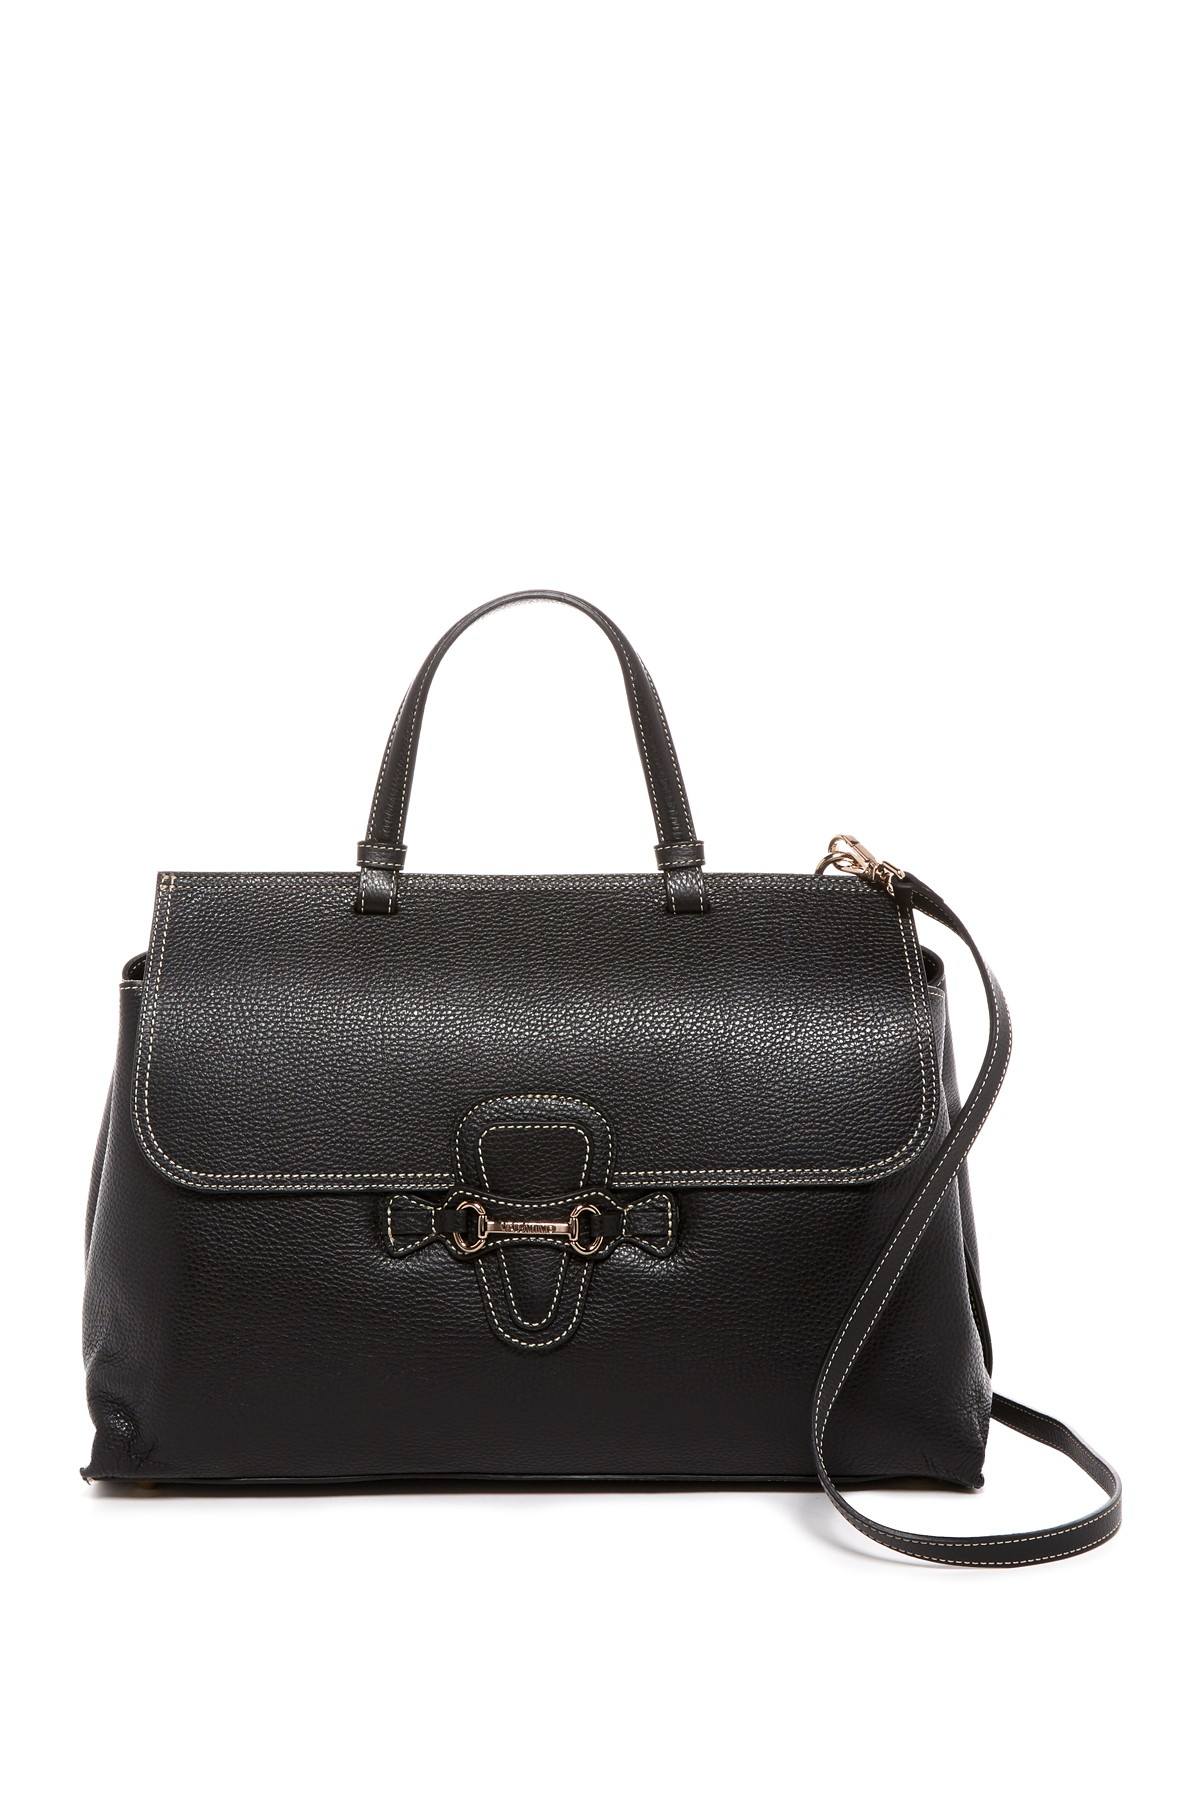 valentino by mario valentino olimpia leather satchel in. Black Bedroom Furniture Sets. Home Design Ideas